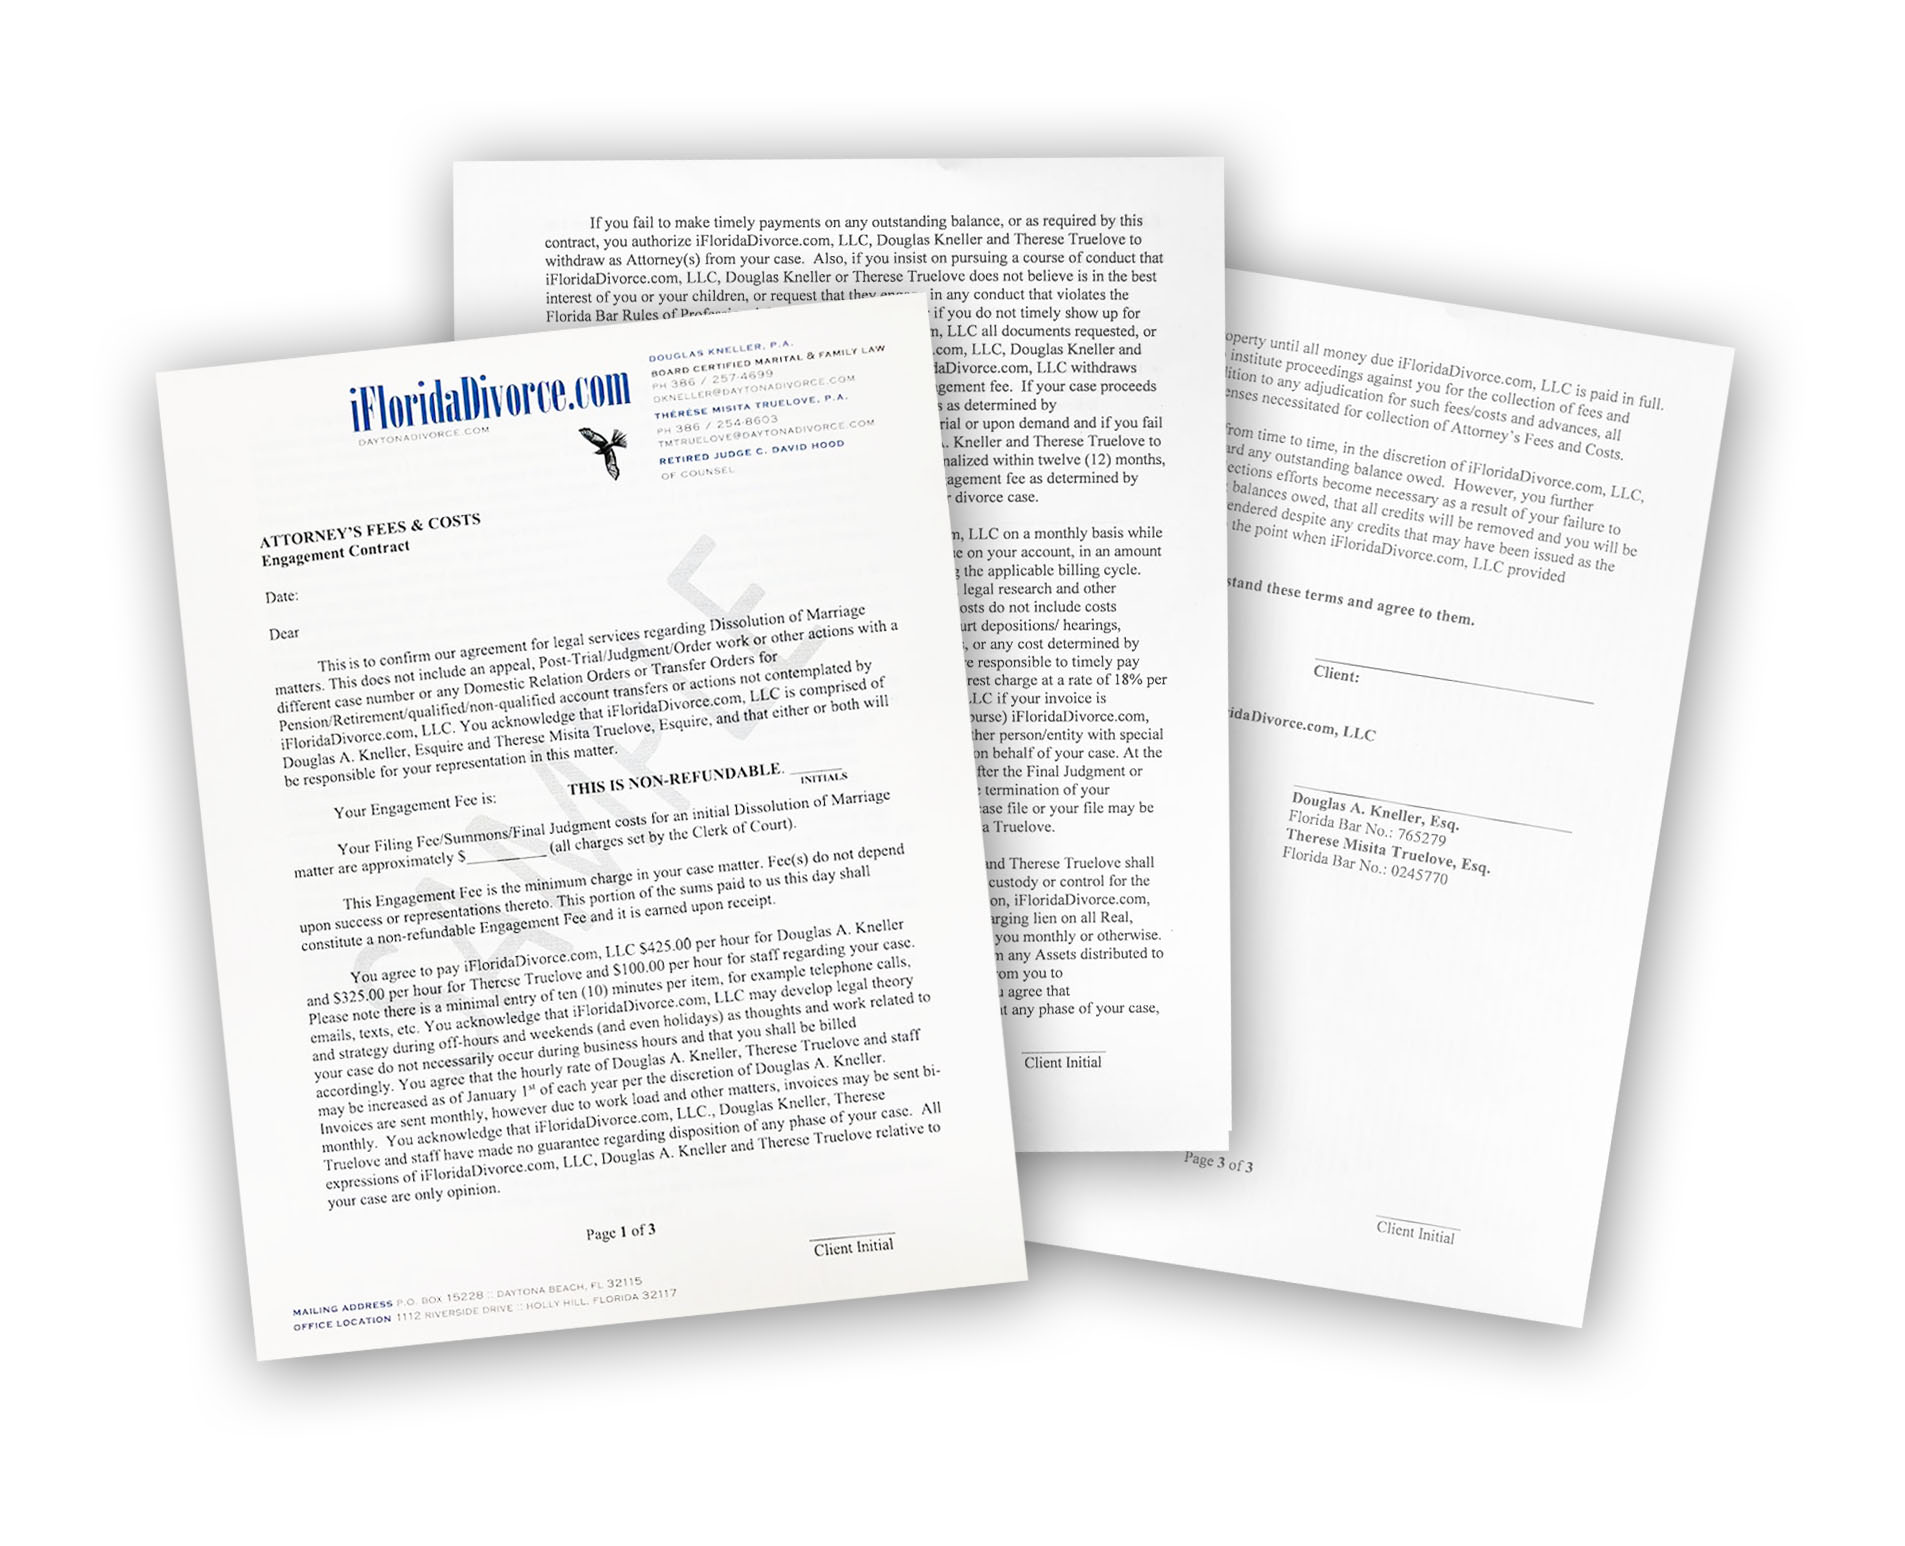 Our standard Engagement Contract spells out attorney cost and fees